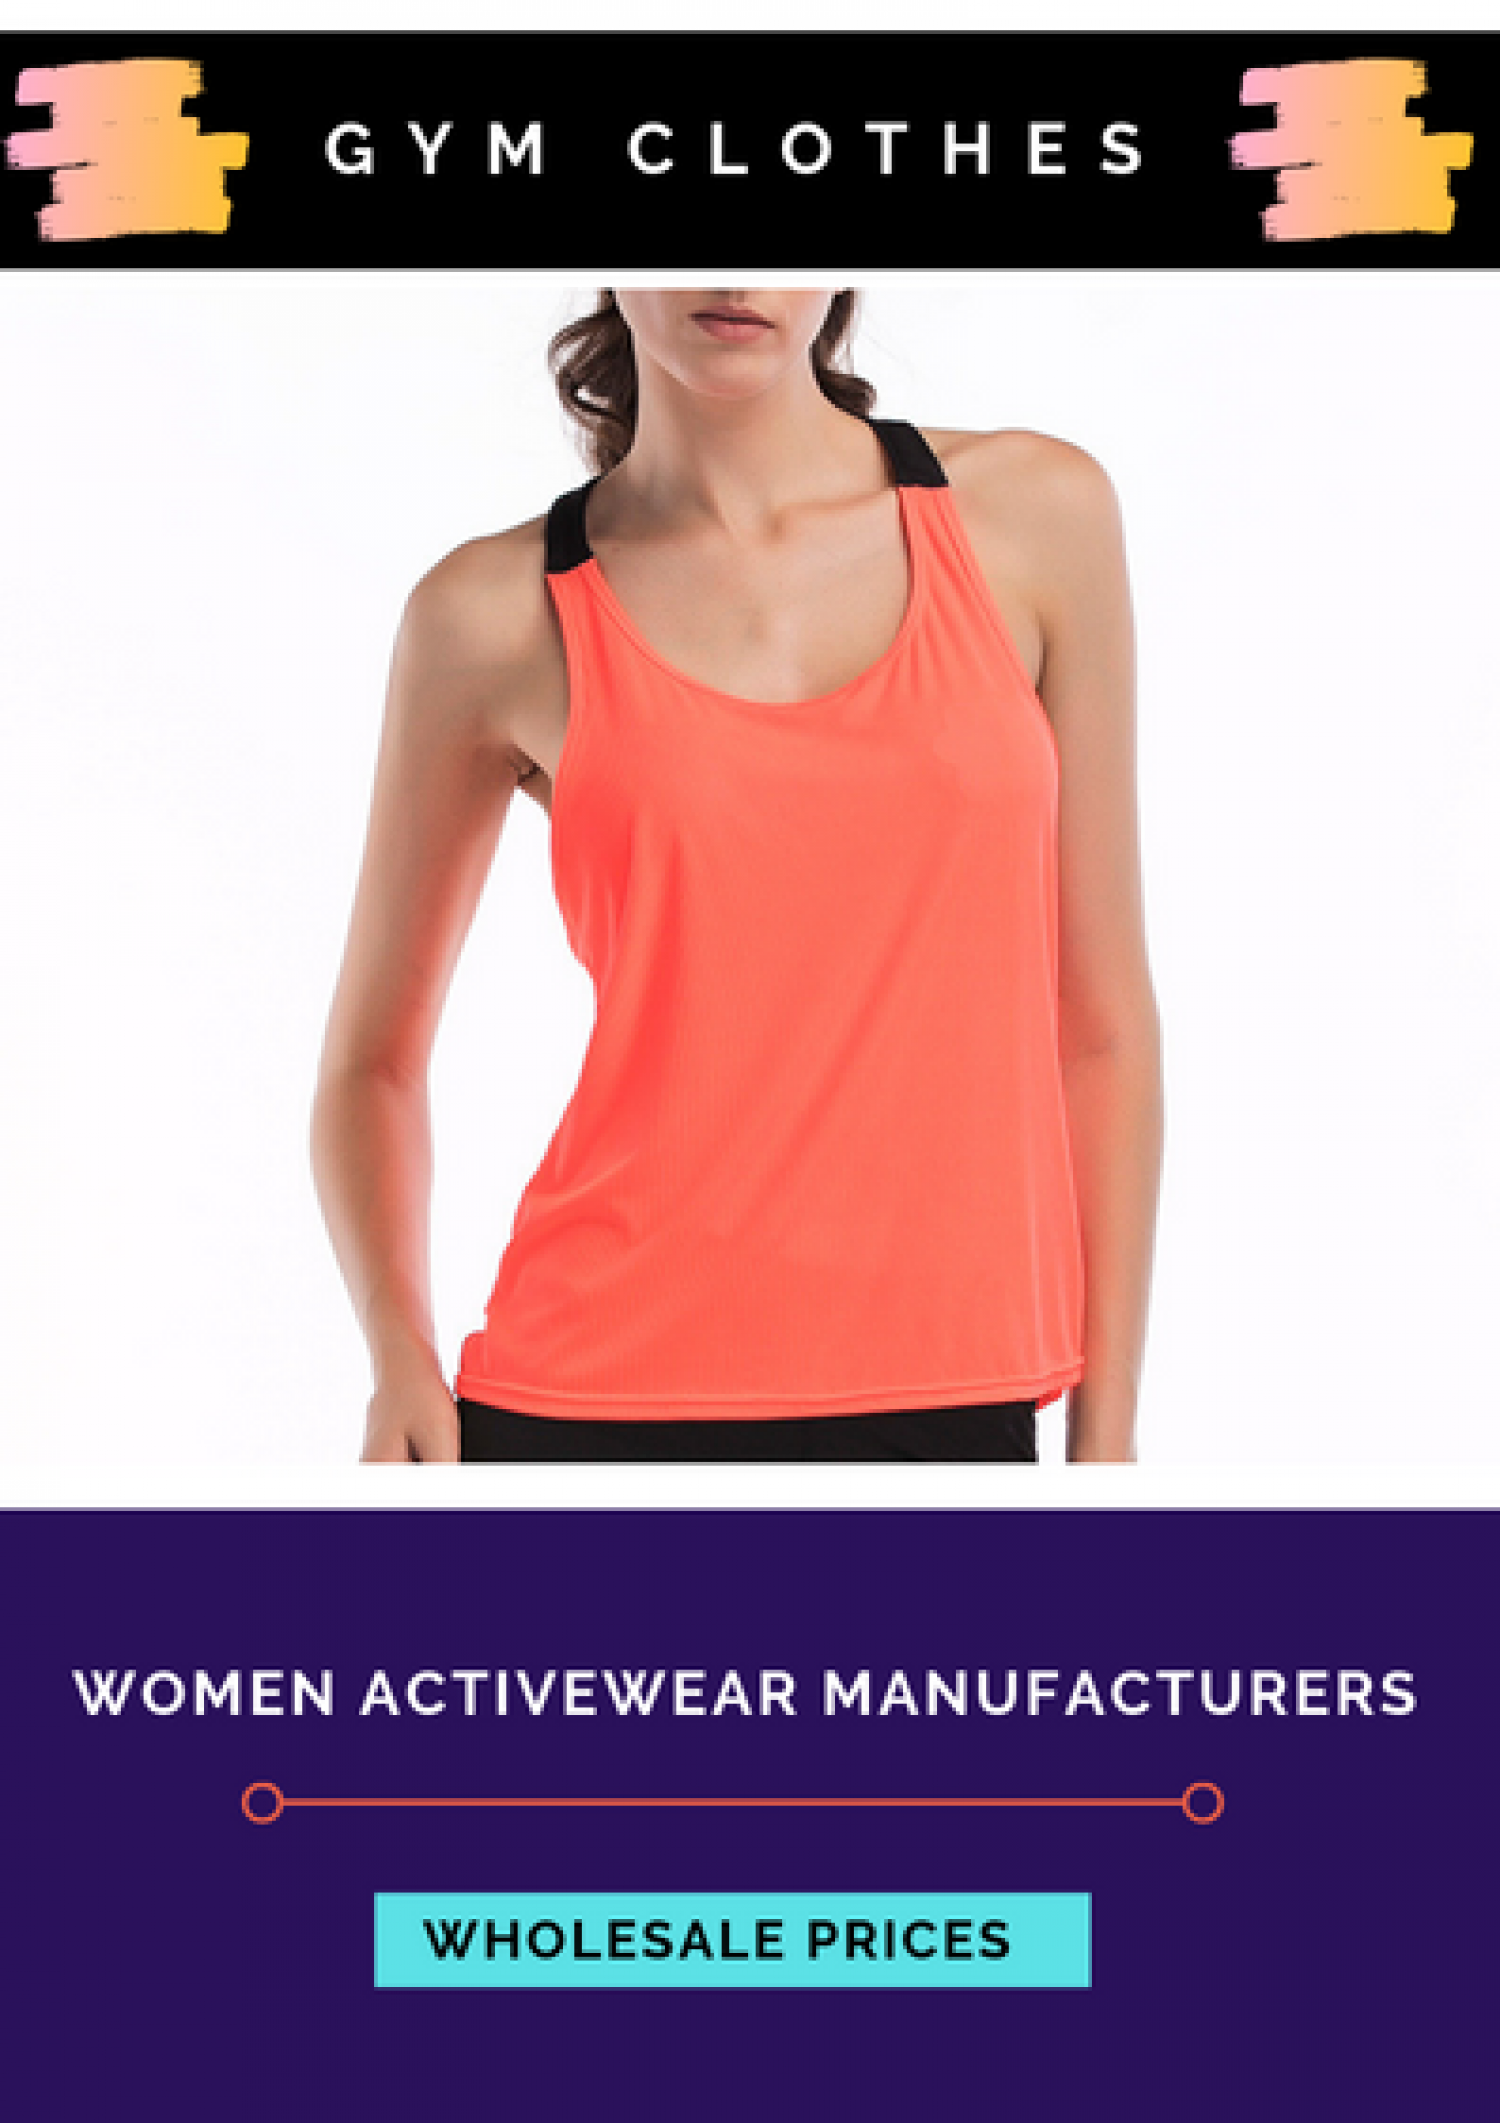 Ladies Gym Wear Wholesale - Get In Touch With Gym Clothes For Bulk Apparel Needs! Infographic